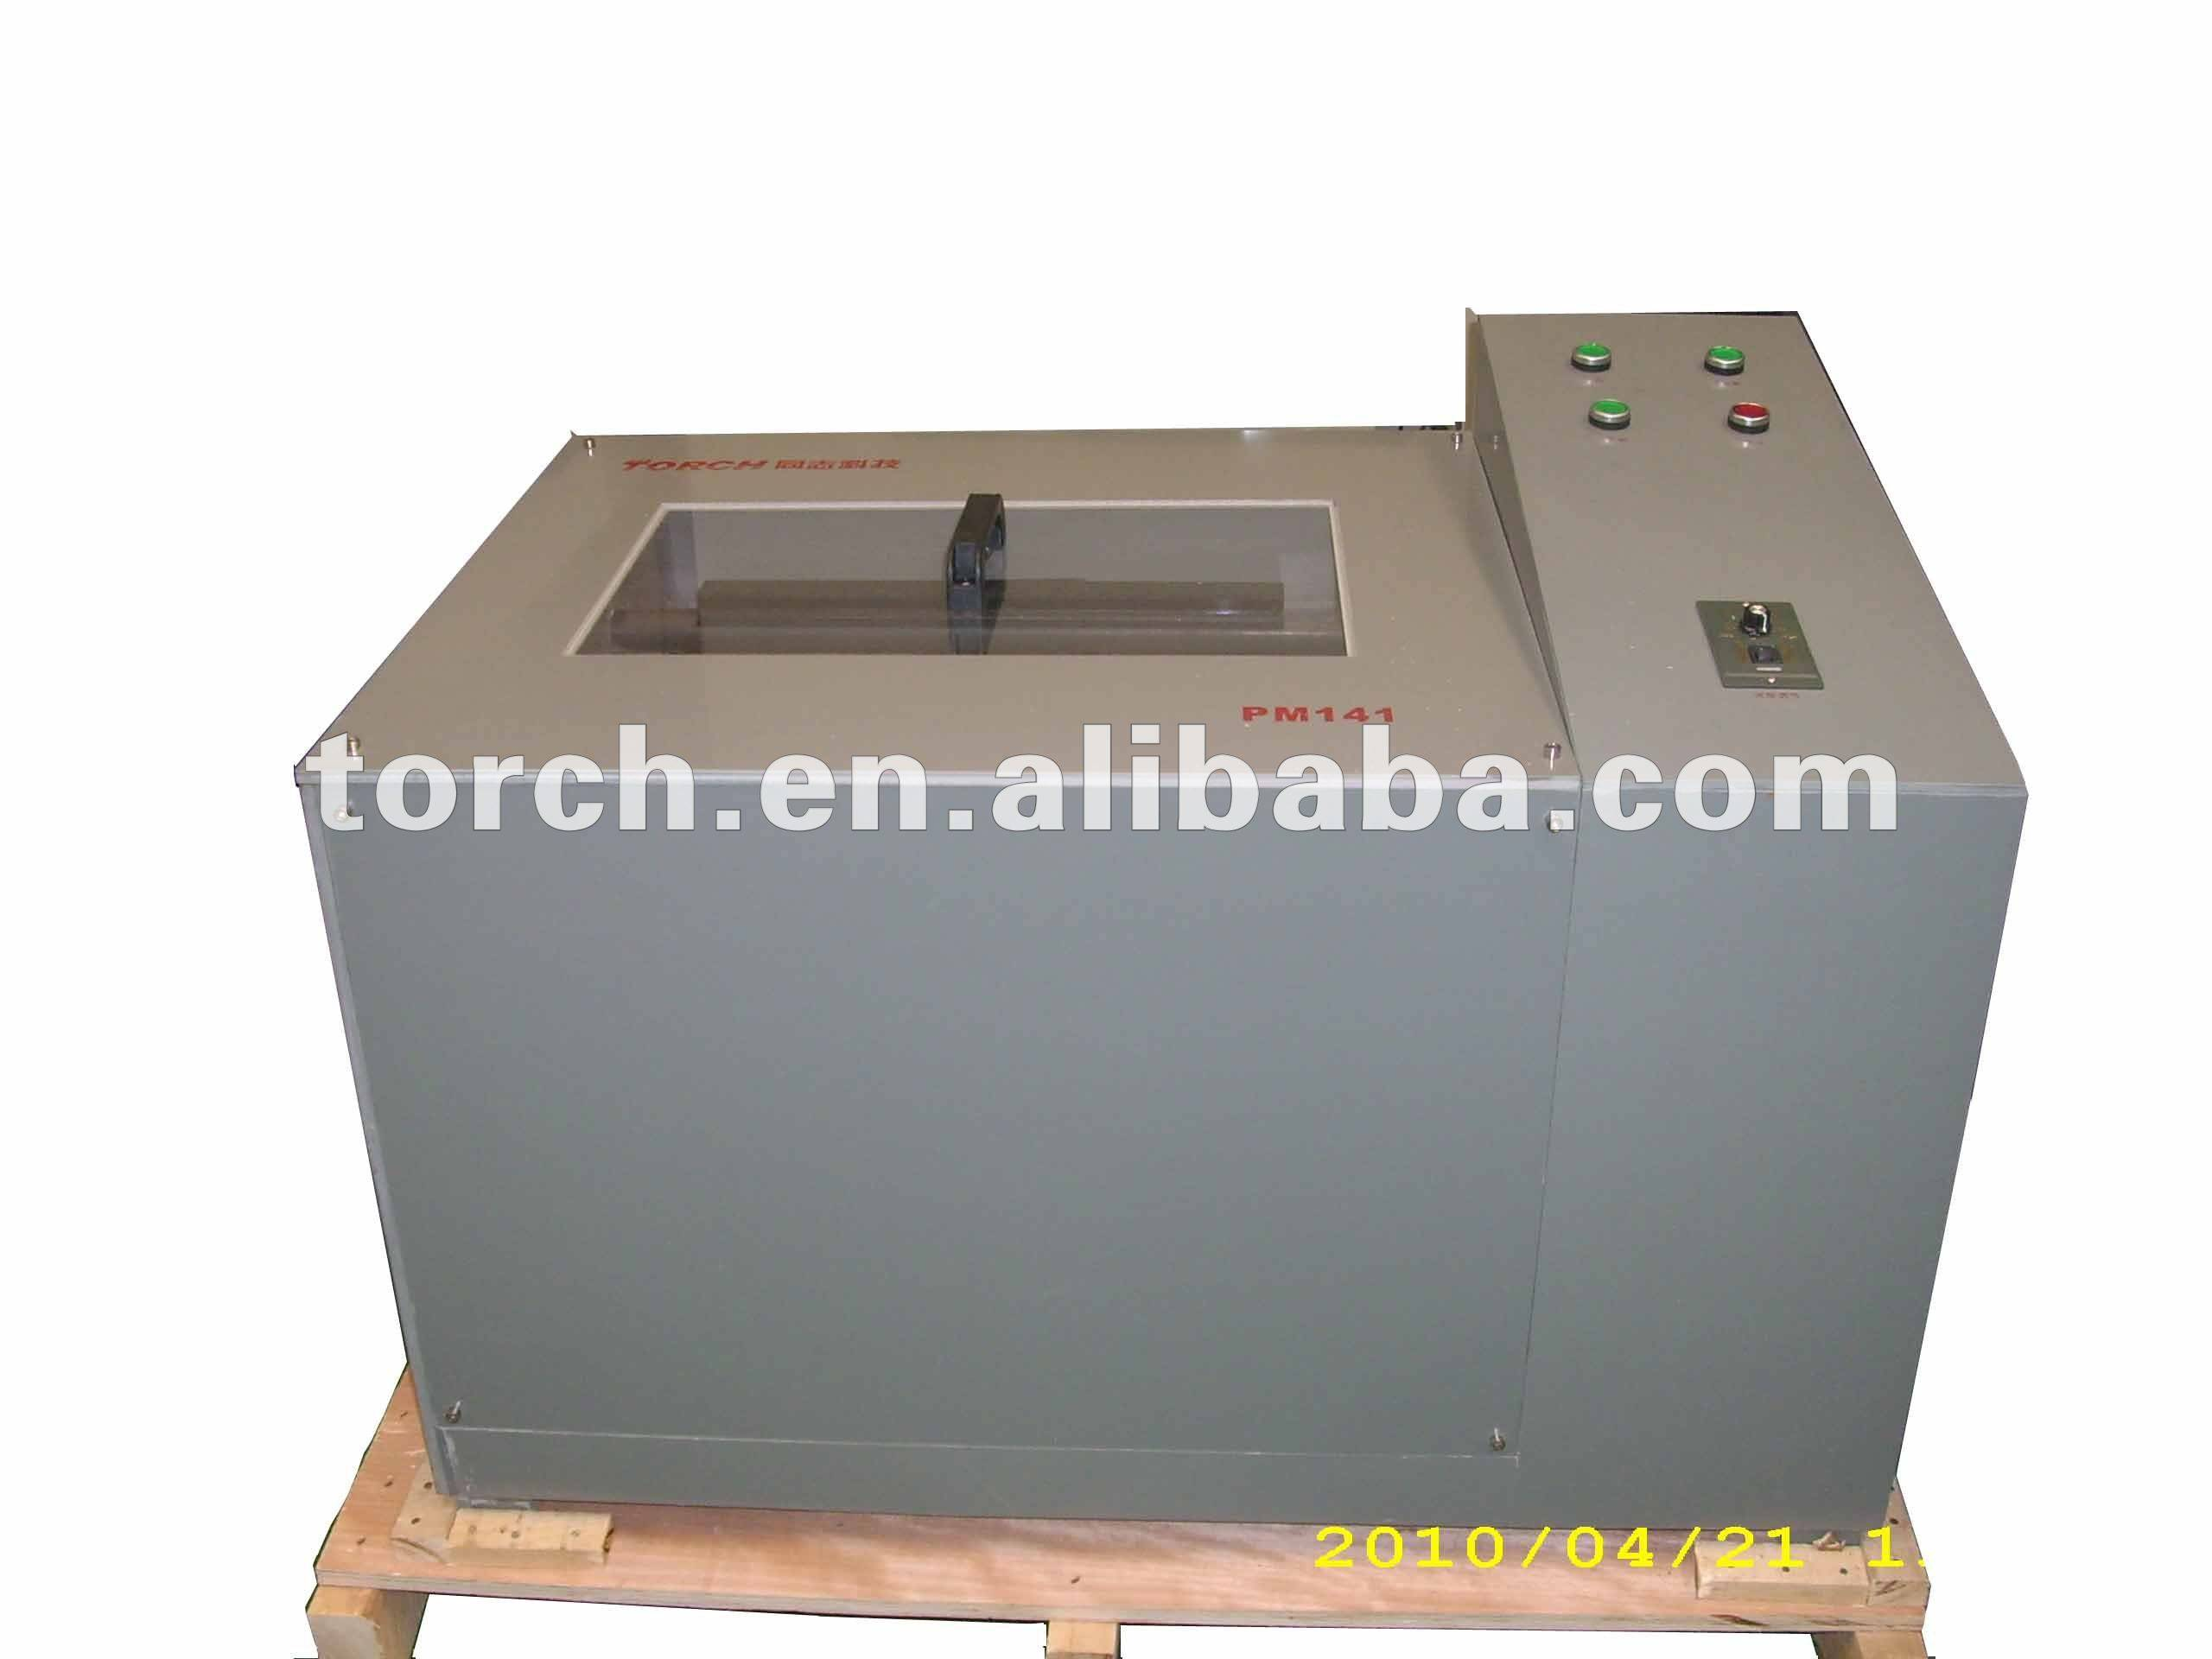 PCB Double Side Spray Etching Machine PM141 (TORCH)